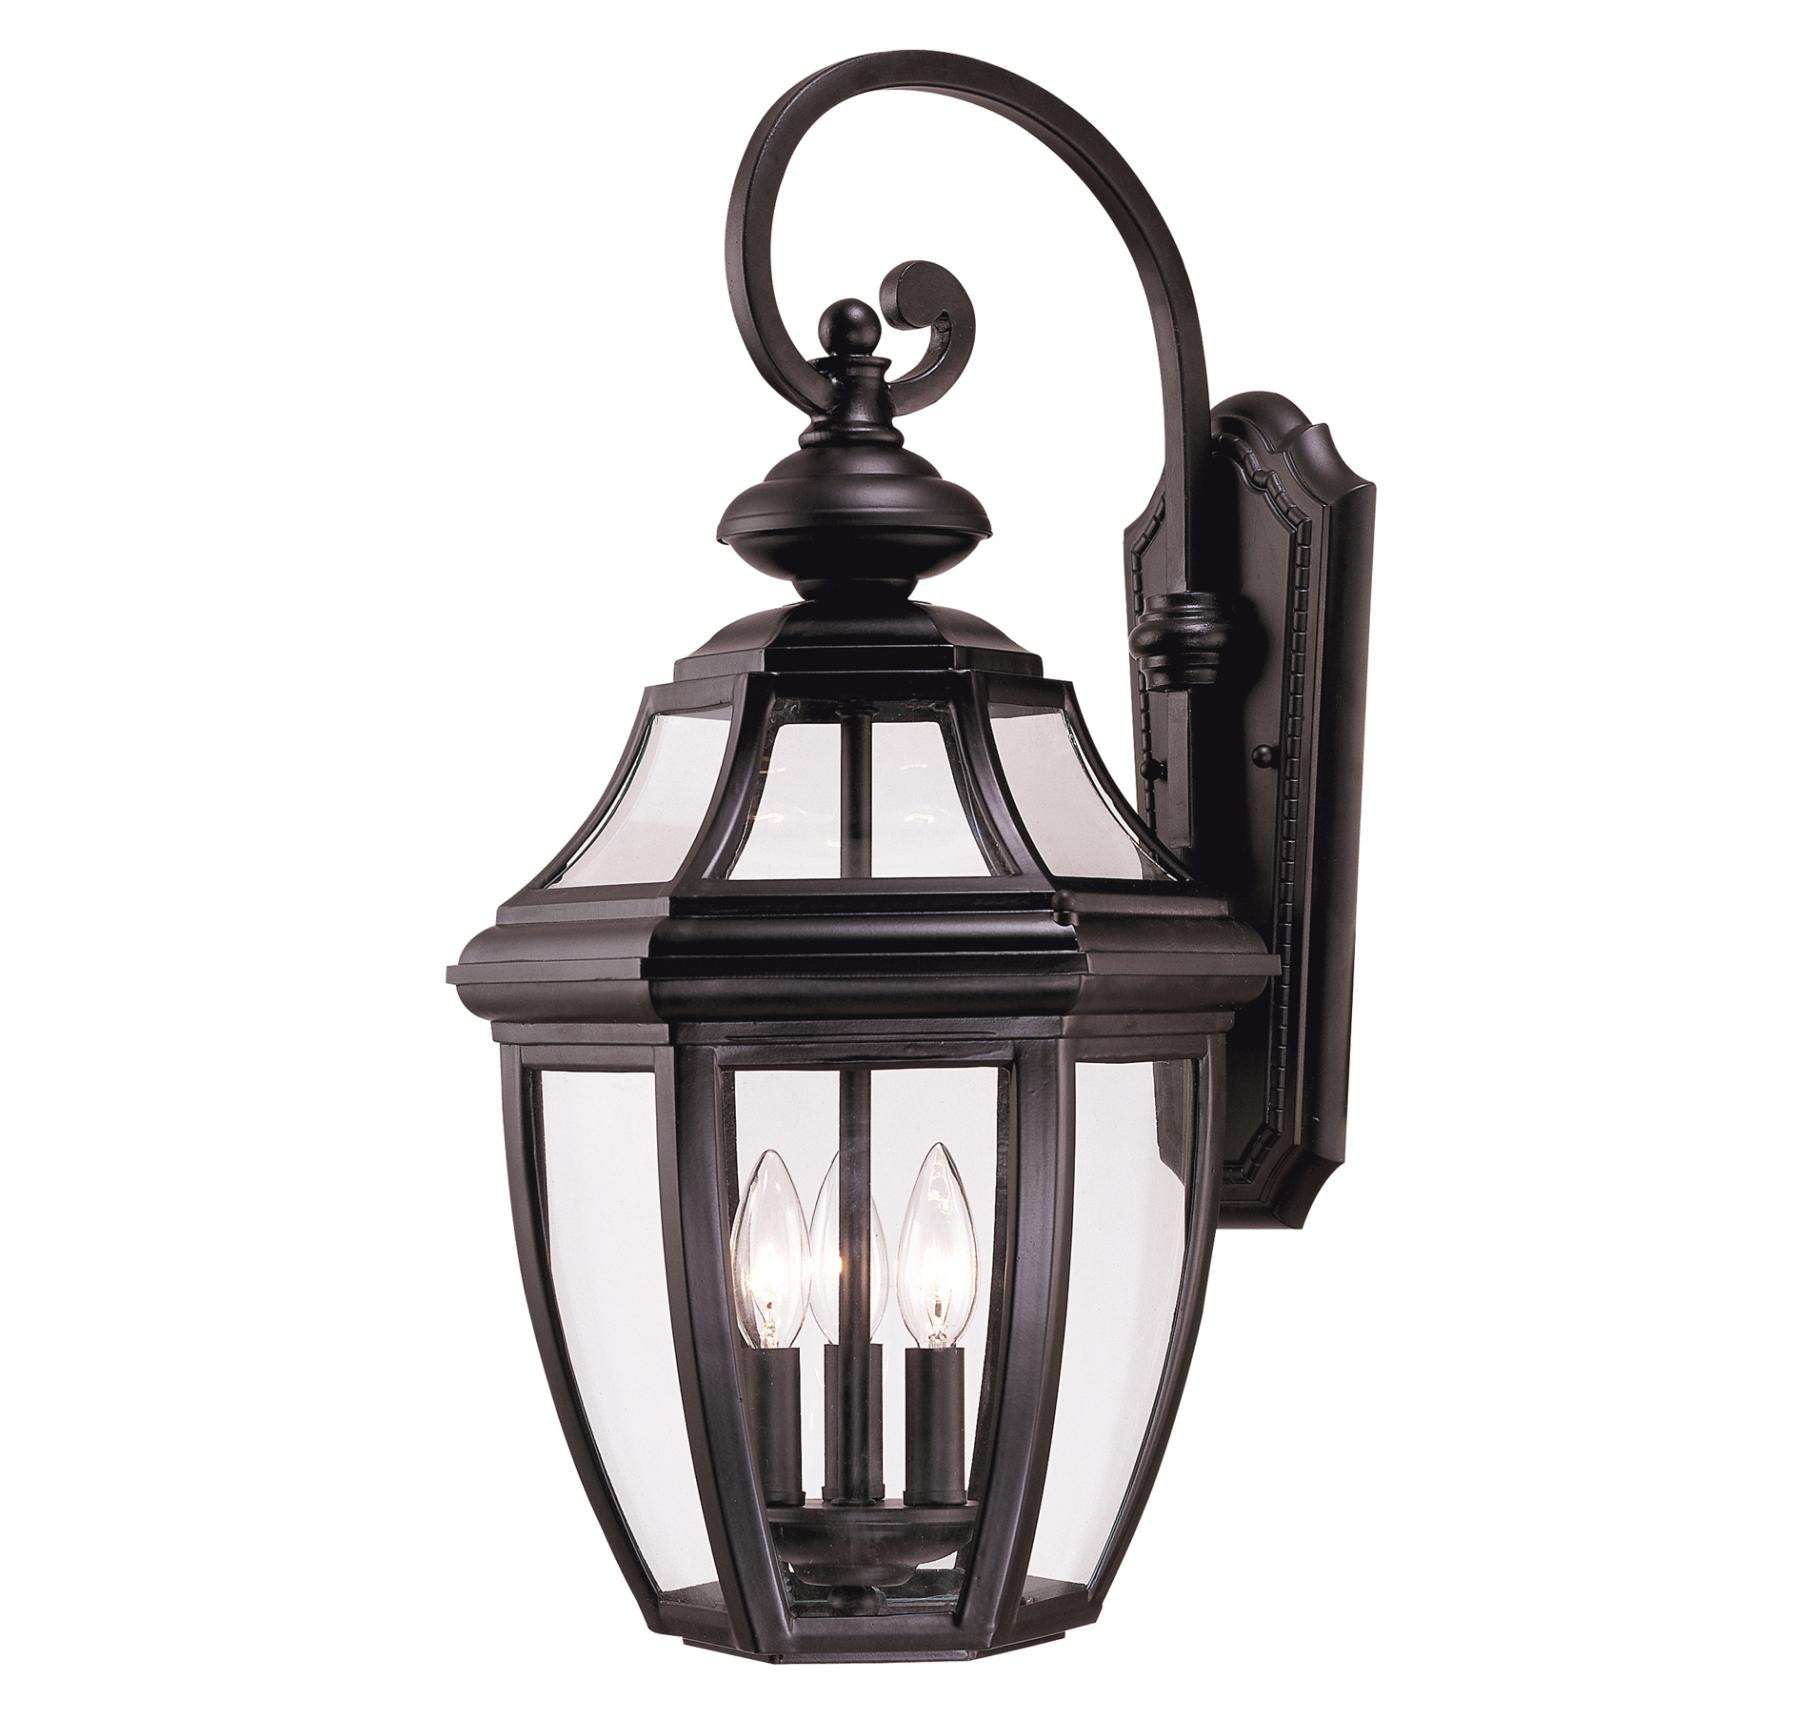 Savoy House 5-493-BK Endorado Wall Mount Lantern in Black Finish with Clear glass